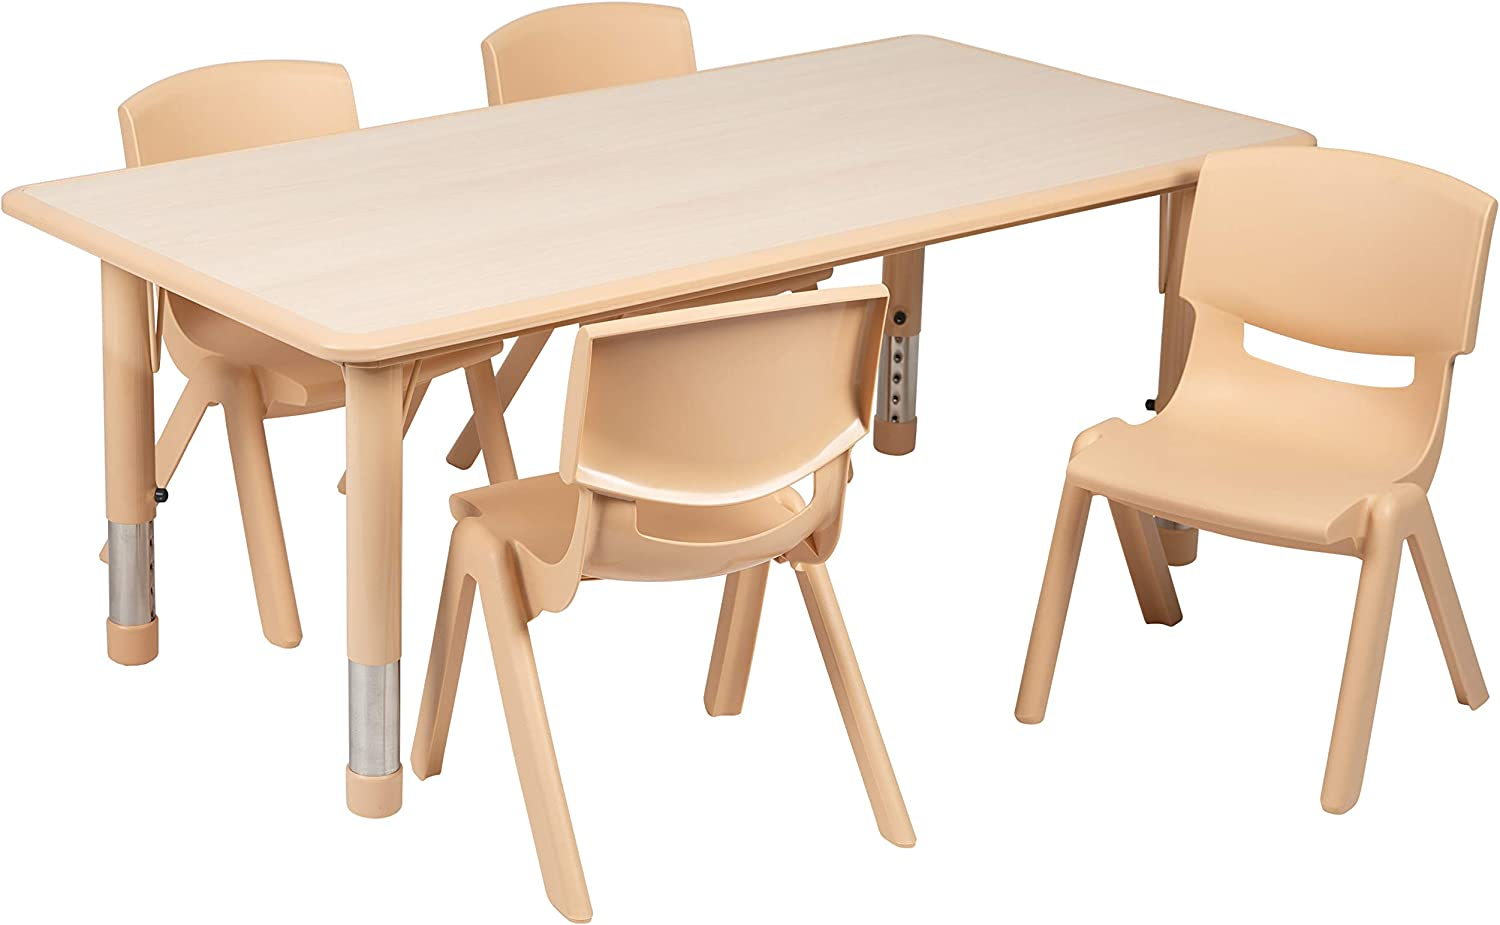 "Flash Furniture 23.625""W x 47.25""L Rectangular Natural Plastic Height Adjustable Activity Table Set with 4 Chairs"